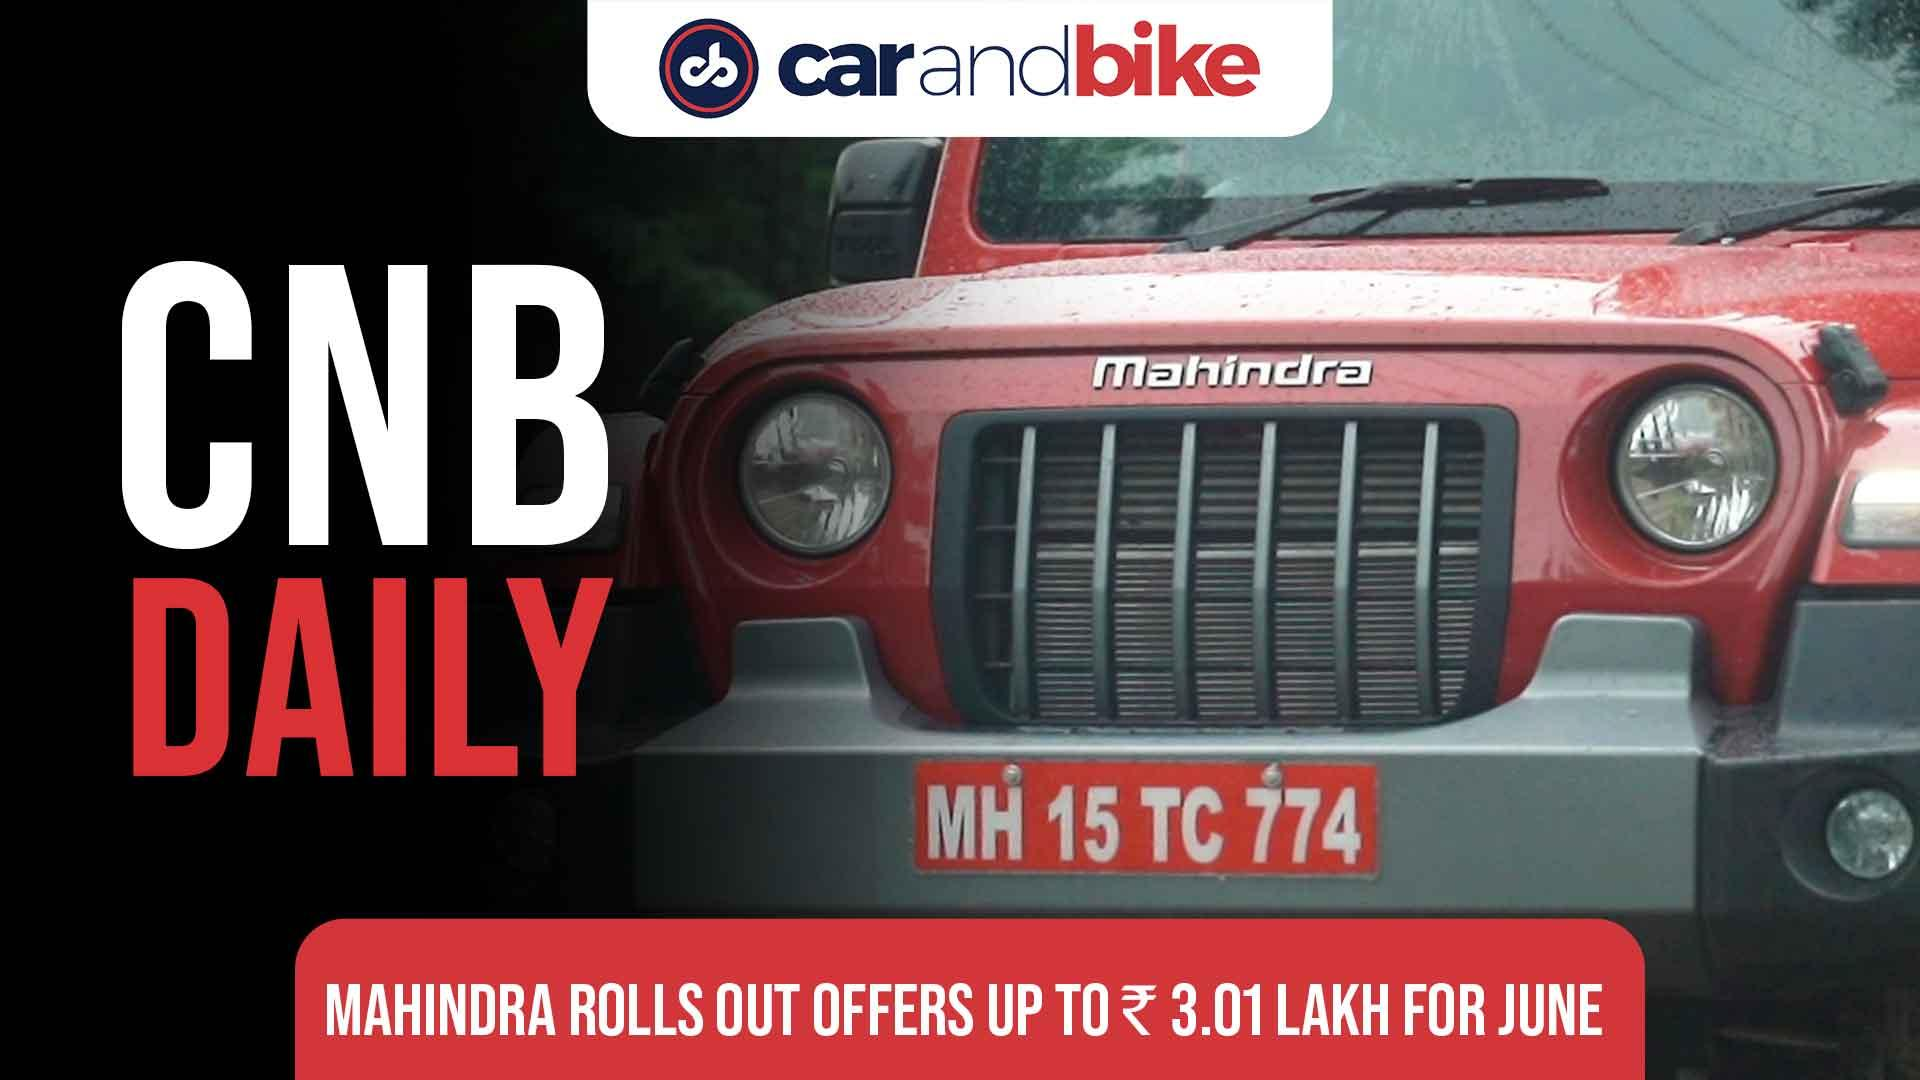 Mahindra Rolls out offers of up to Rs. 3.01 lakh